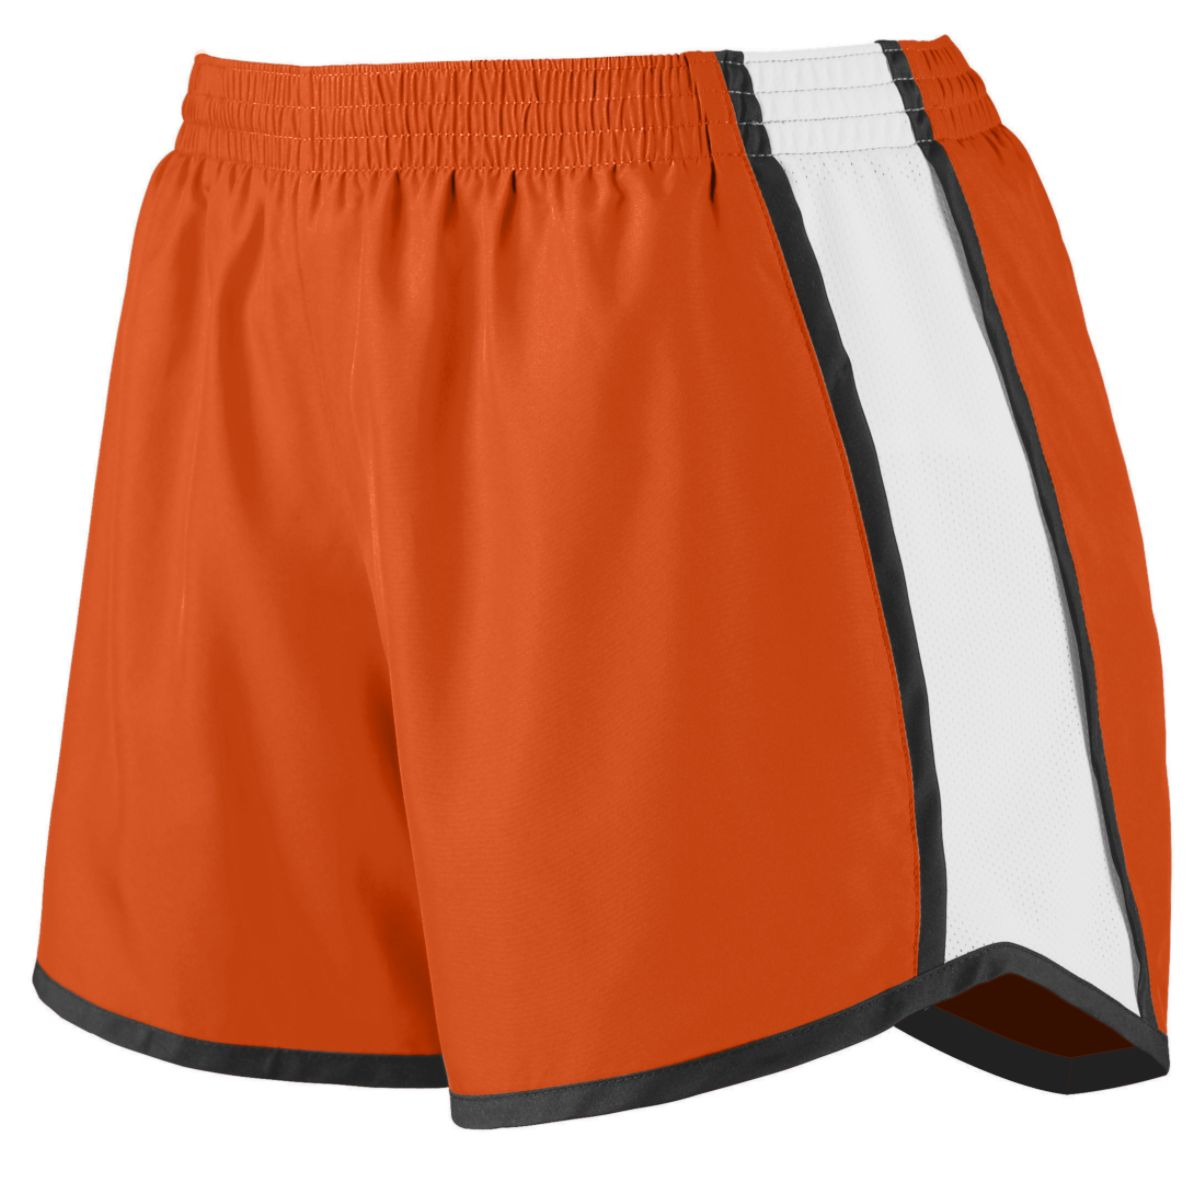 Augusta Lds Jr Fit Pulse Team Short Or/Wh/Bk L - image 1 de 1